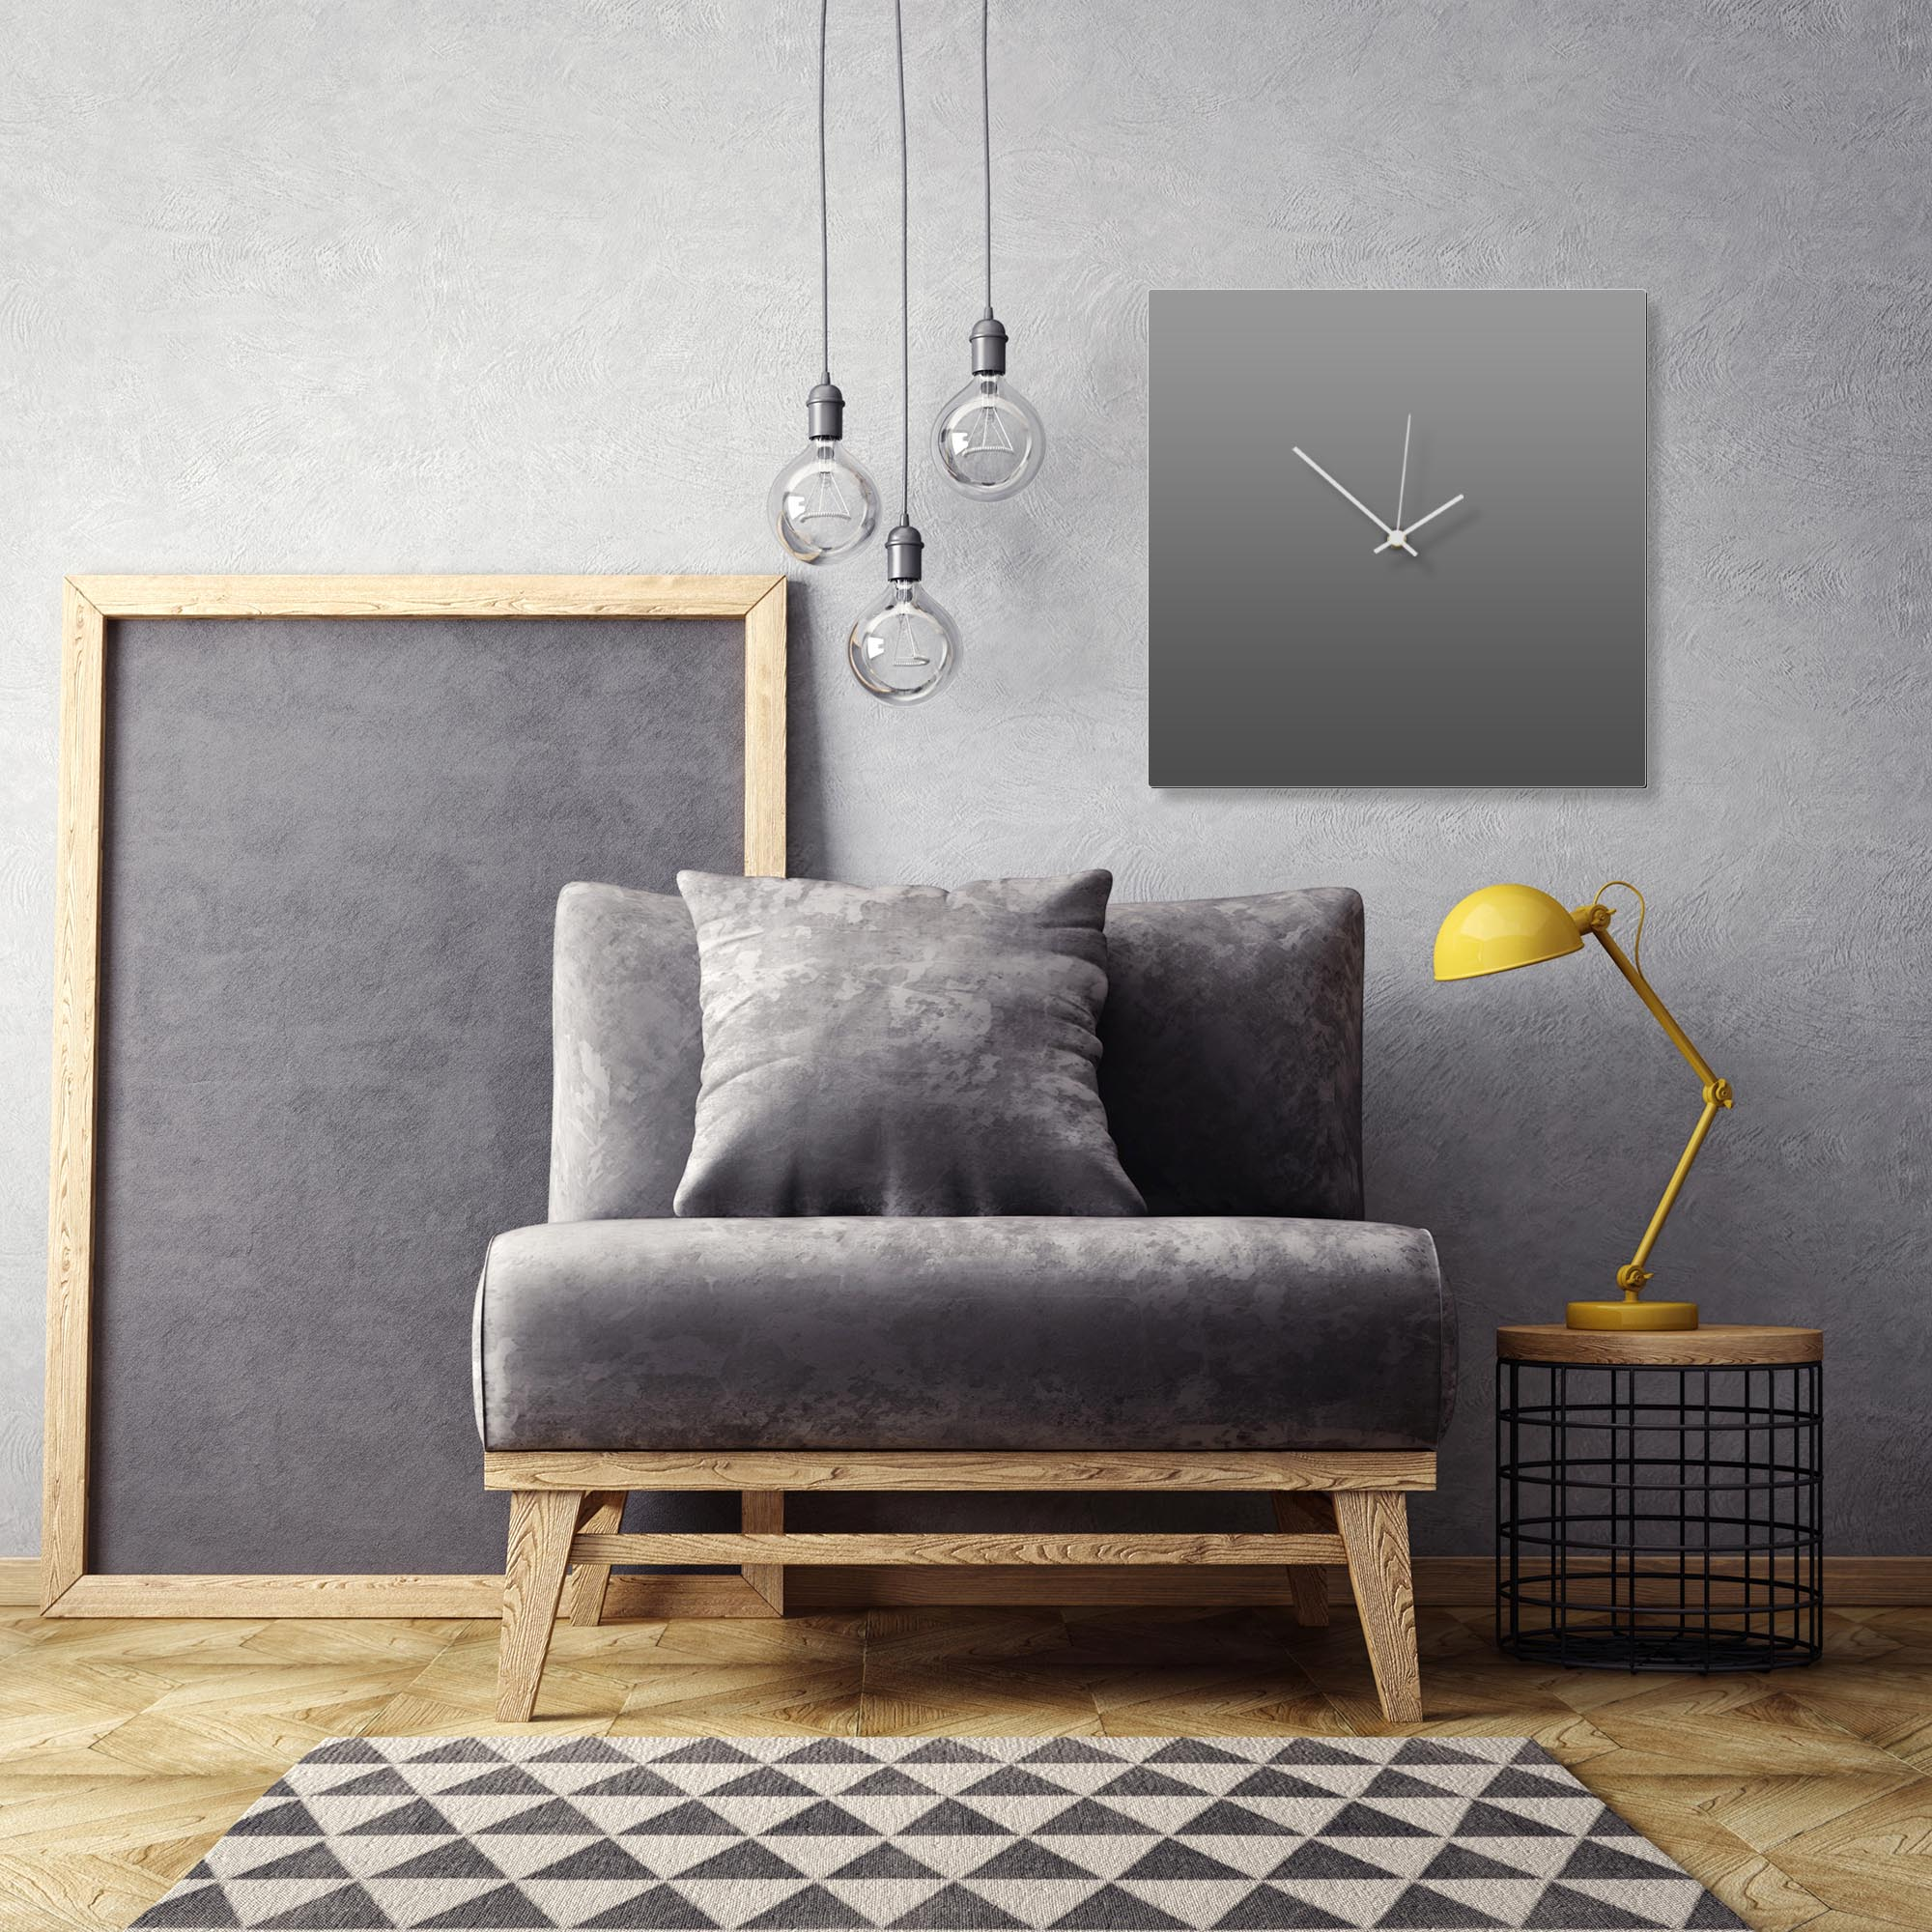 Grayout White Square Clock Large by Adam Schwoeppe Contemporary Clock on Aluminum Polymetal - Alternate View 1